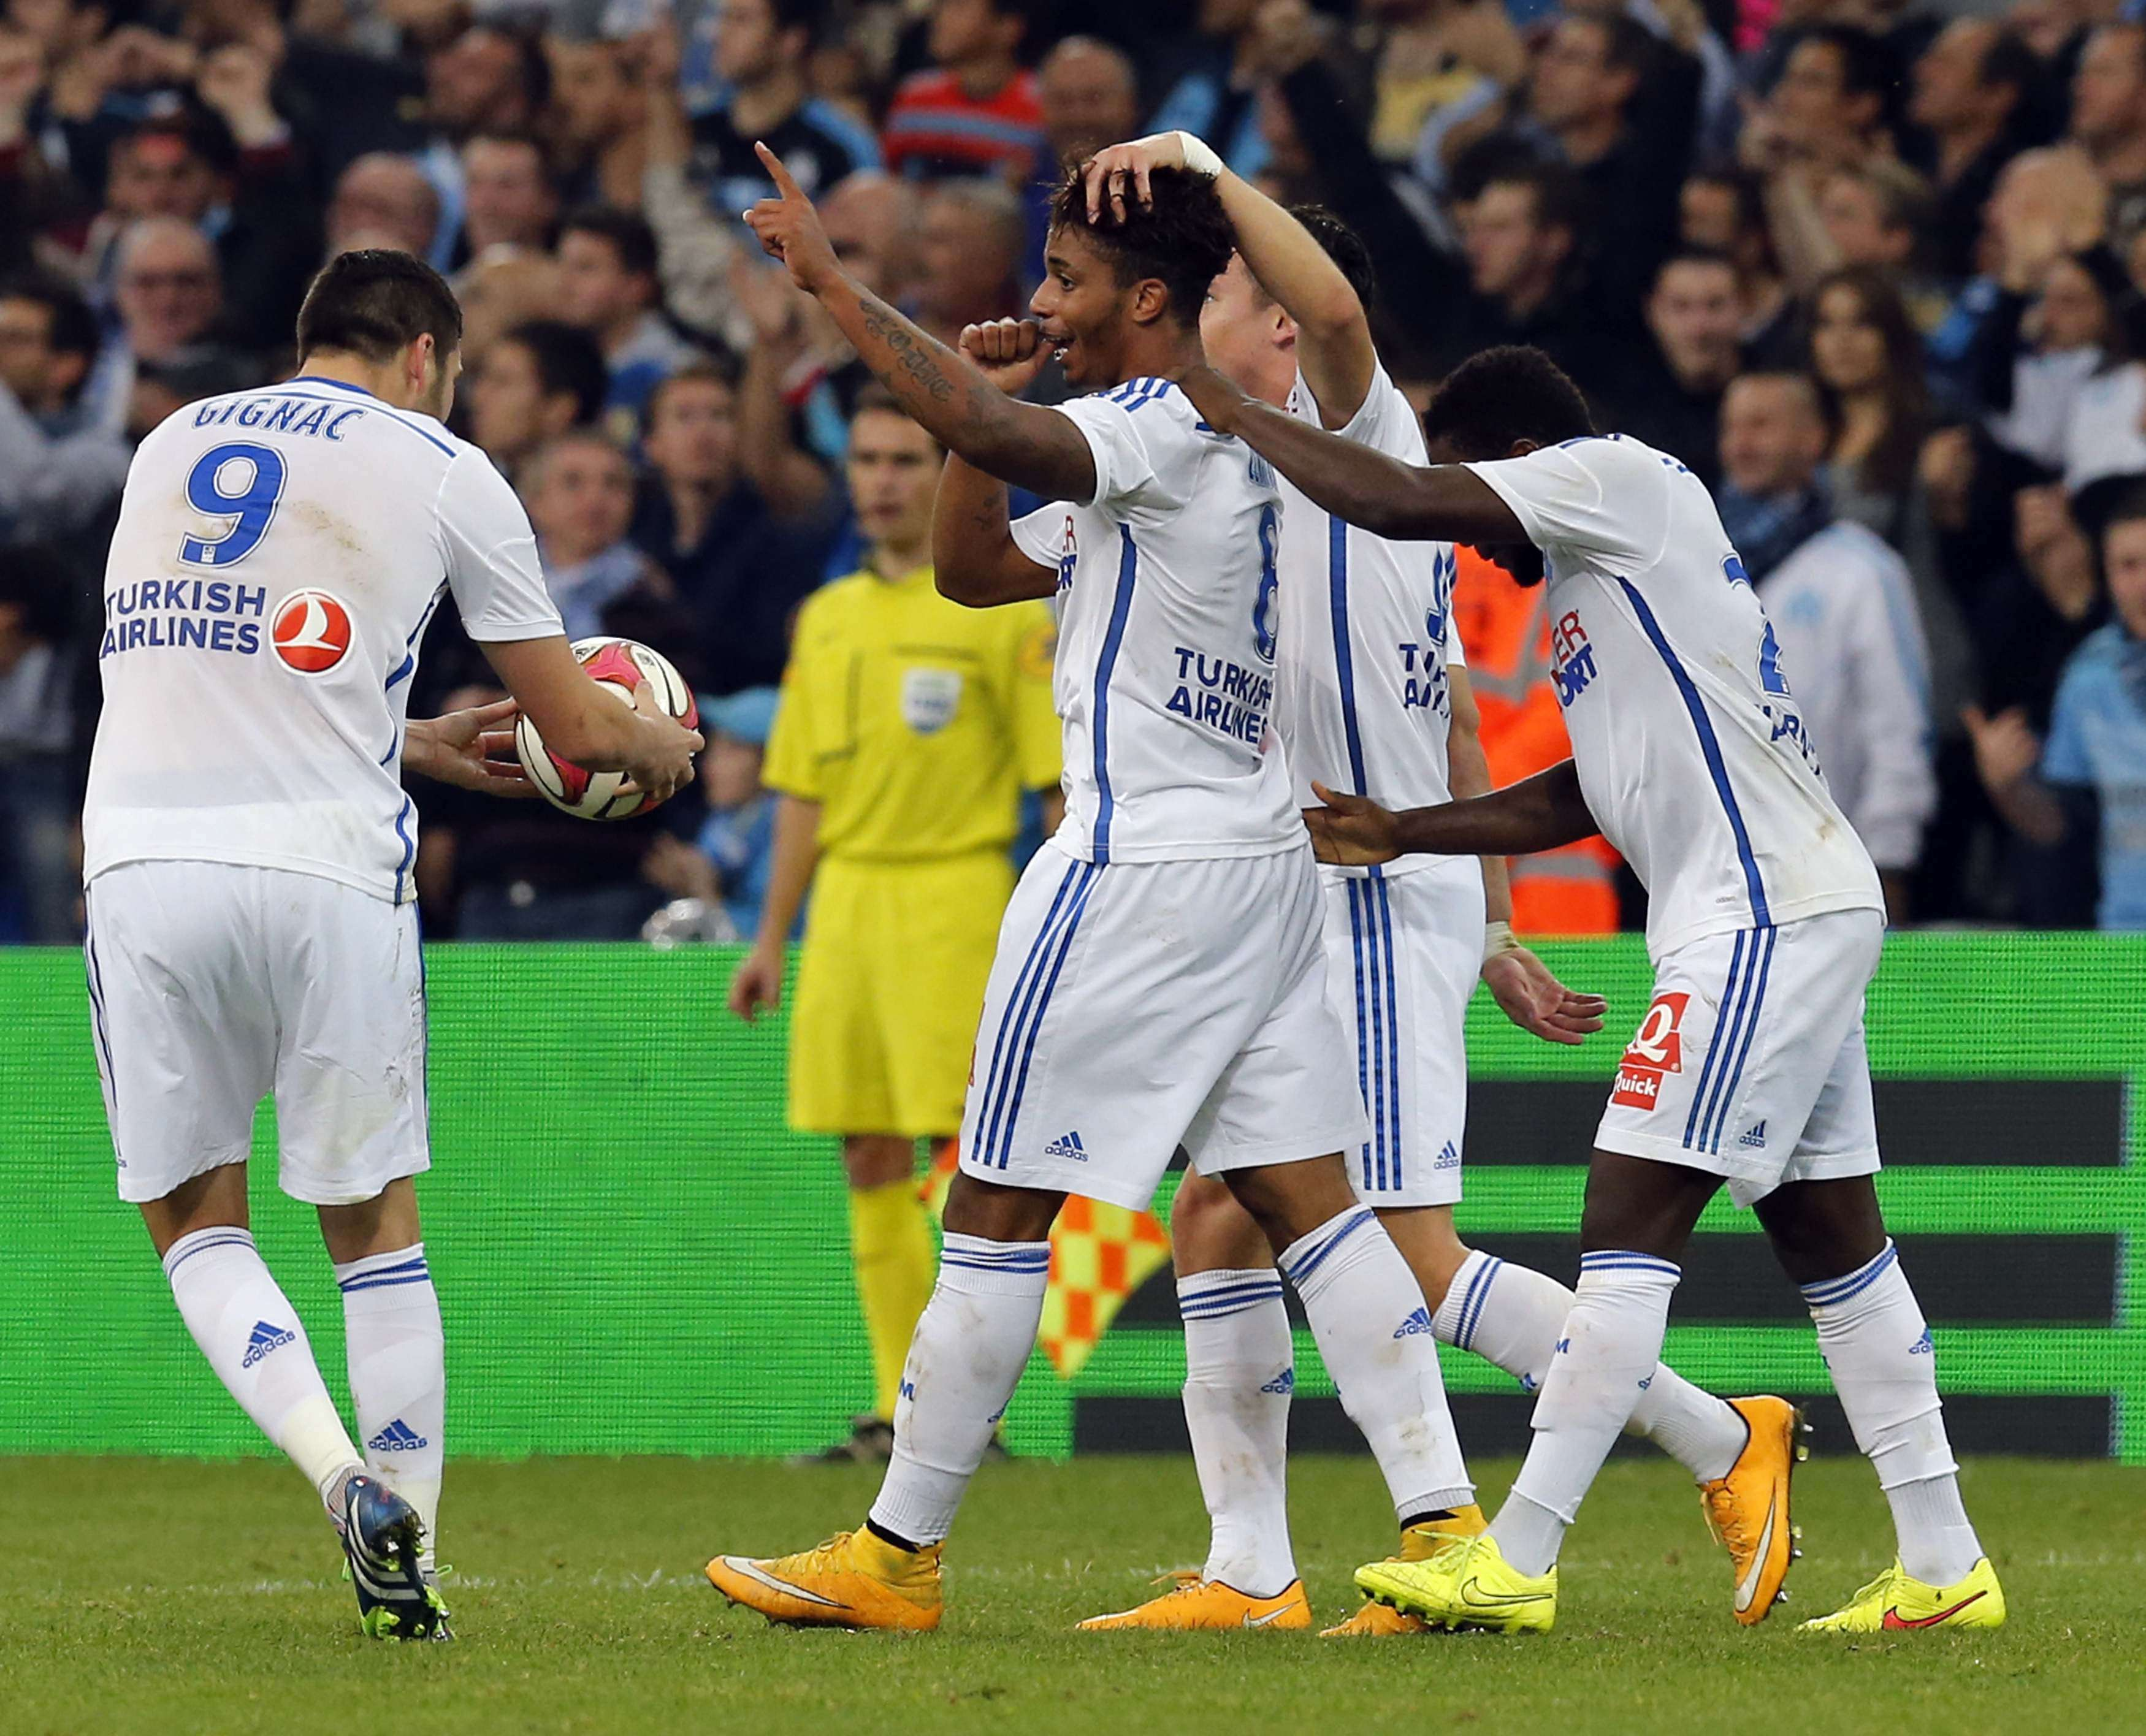 Olympique Marseille's Mario Lemina (C) celebrates with teammates after scoring against Girondins Bordeaux during their French Ligue 1 soccer match at the Velodrome stadium in Marseille, November 23, 2014. REUTERS/Jean-Paul Pelissier (FRANCE - Tags: SPORT SOCCER) Foto: JEAN-PAUL PELISSIER/REUTERS